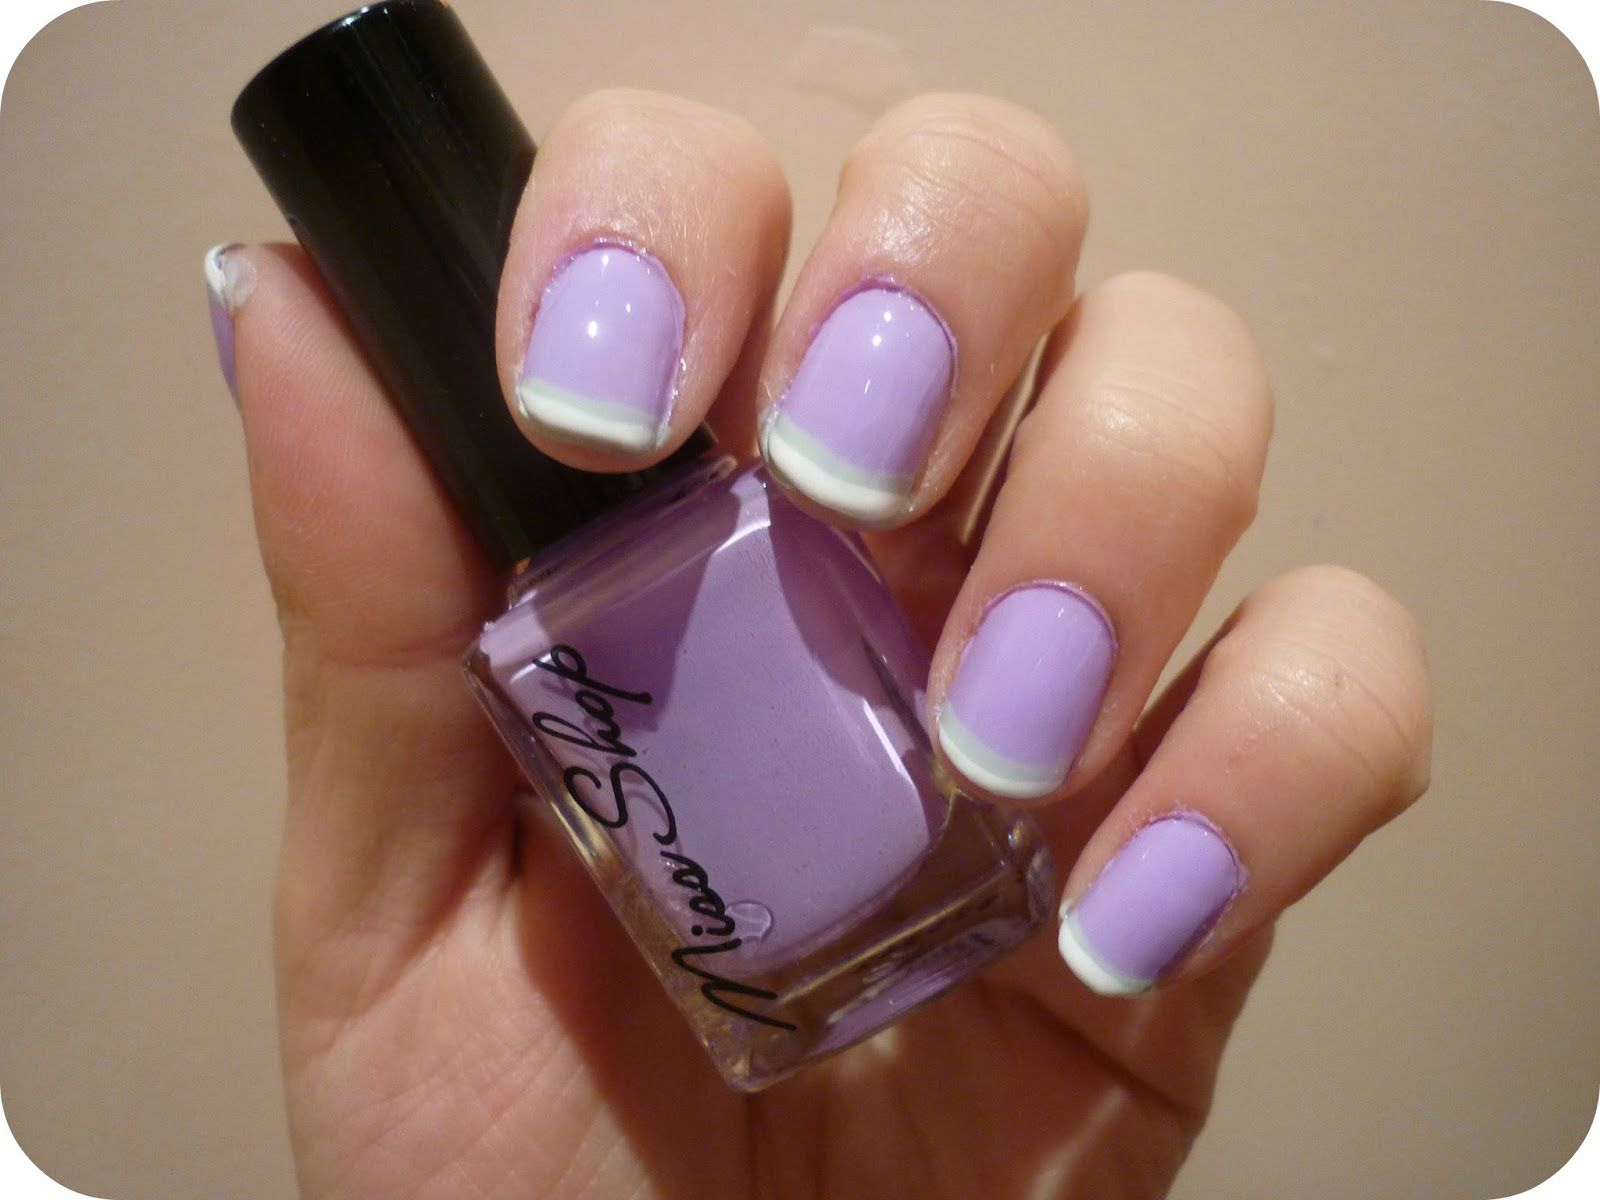 Colored french nail design - Taken By Surprise Double French Tips Nail Art Tutorial